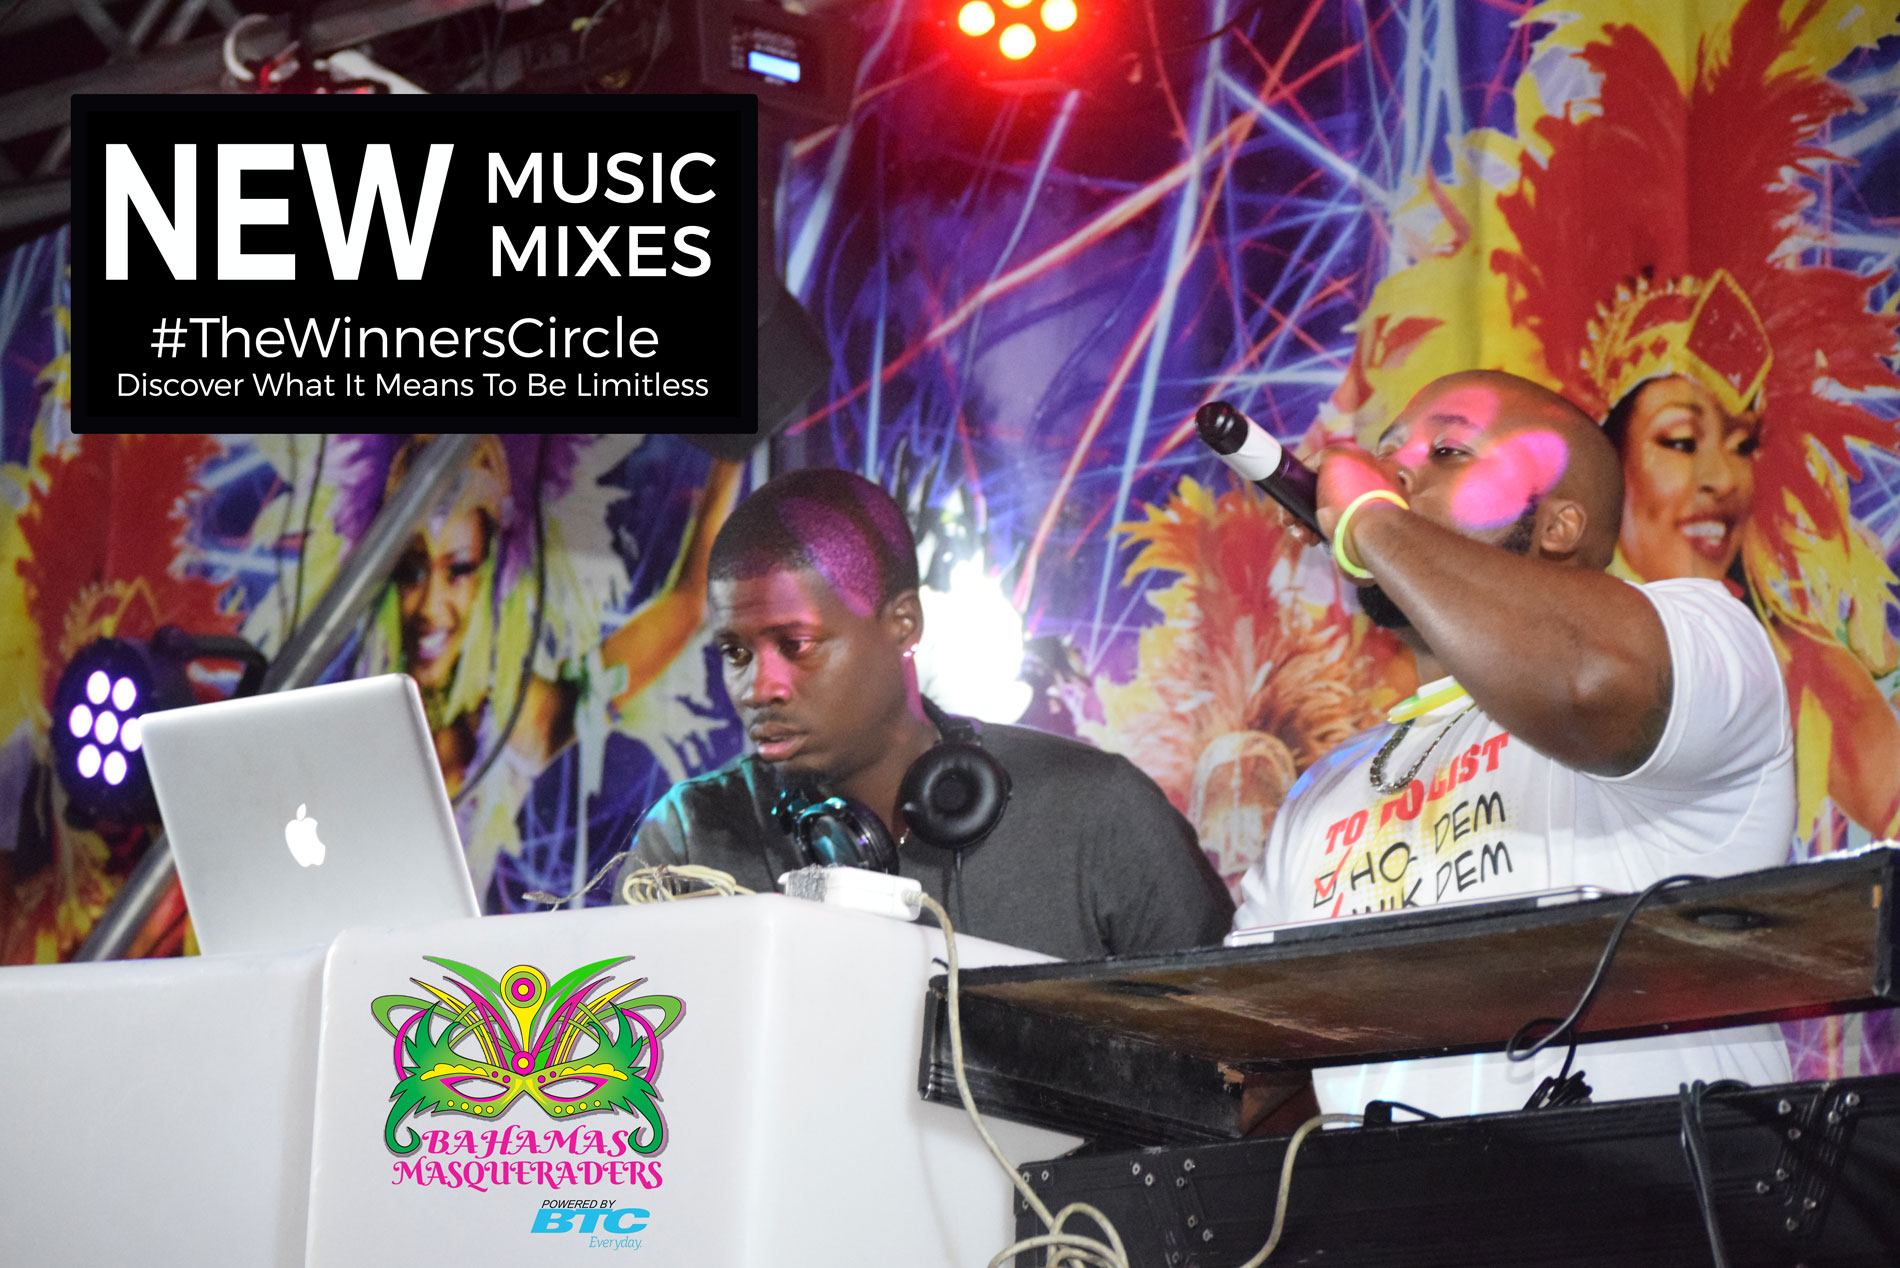 Bahamas Masqueareds DJs and Artists